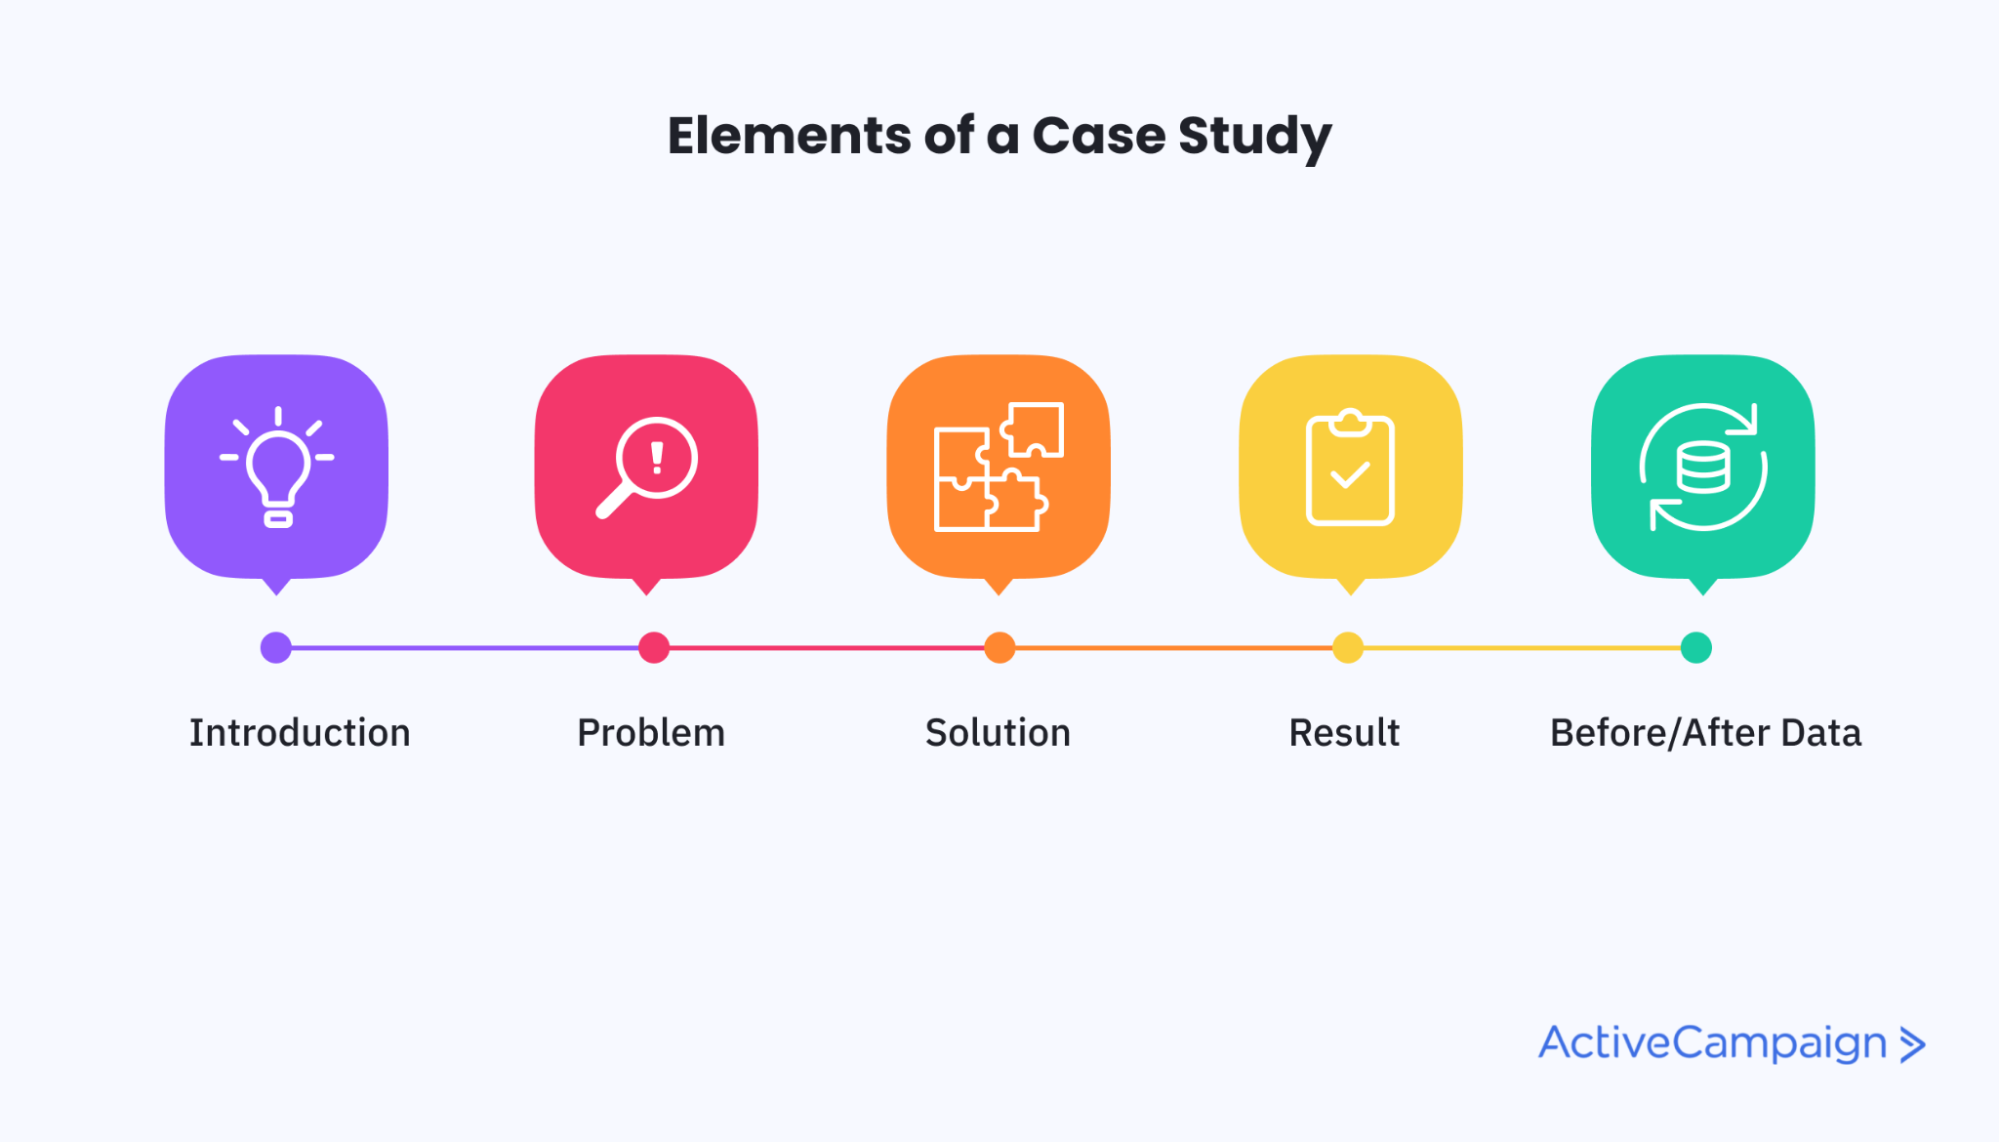 diagram of the elements of a case study